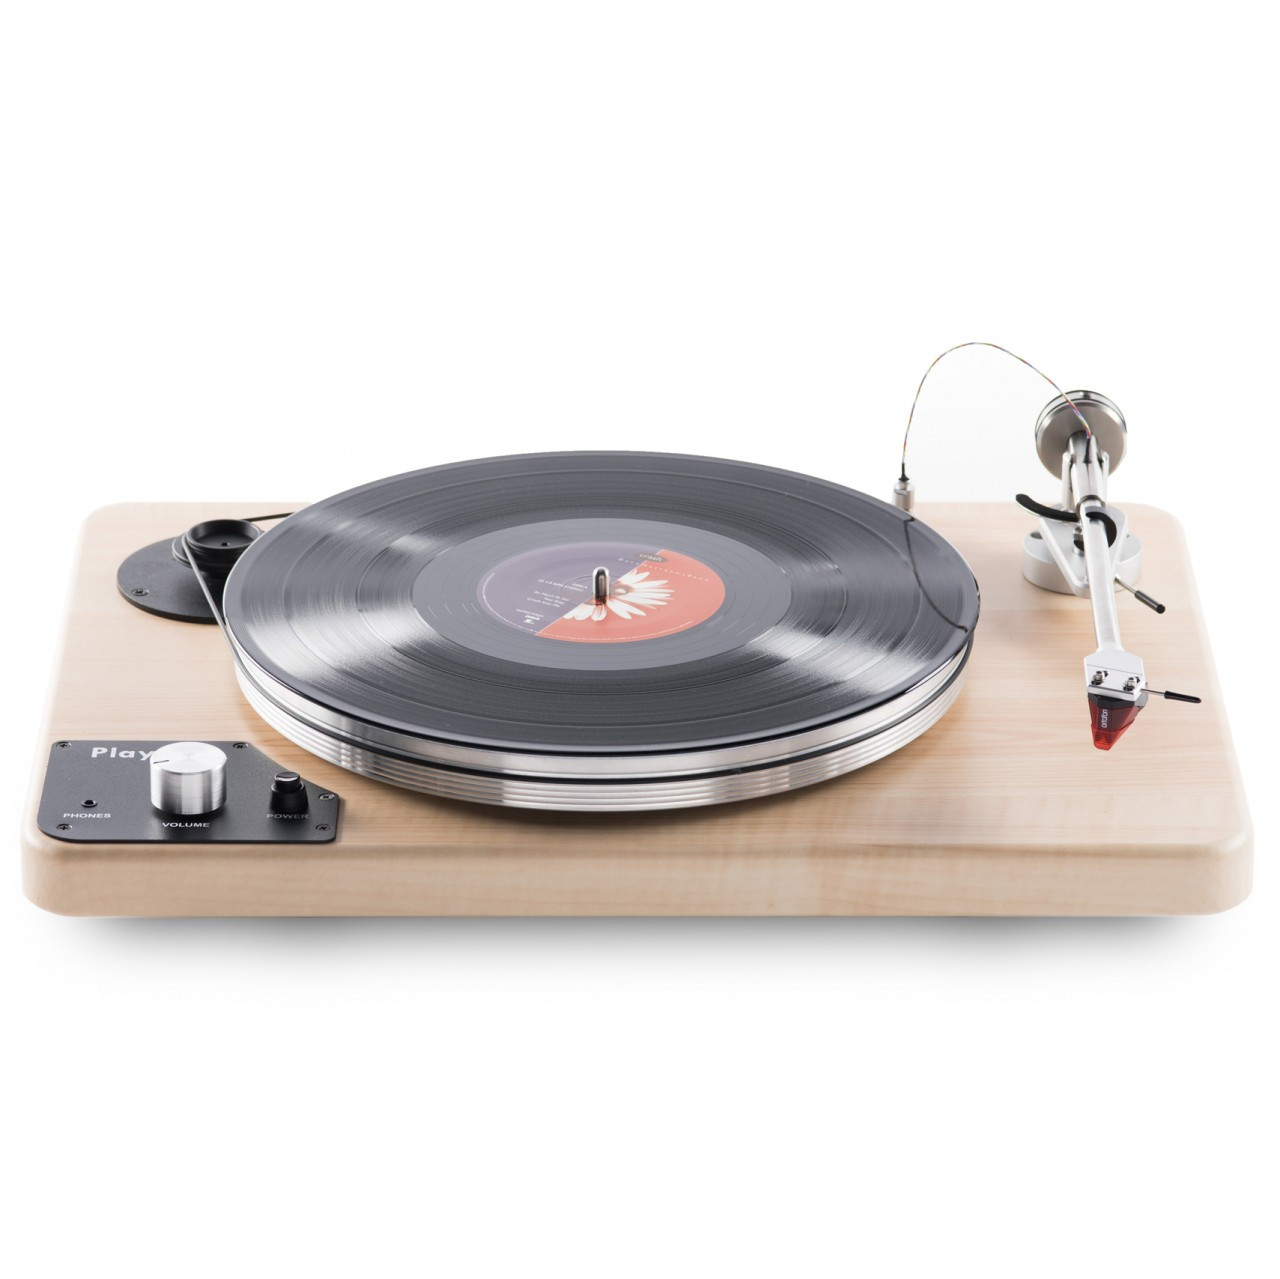 VPI Player turntable Open Box